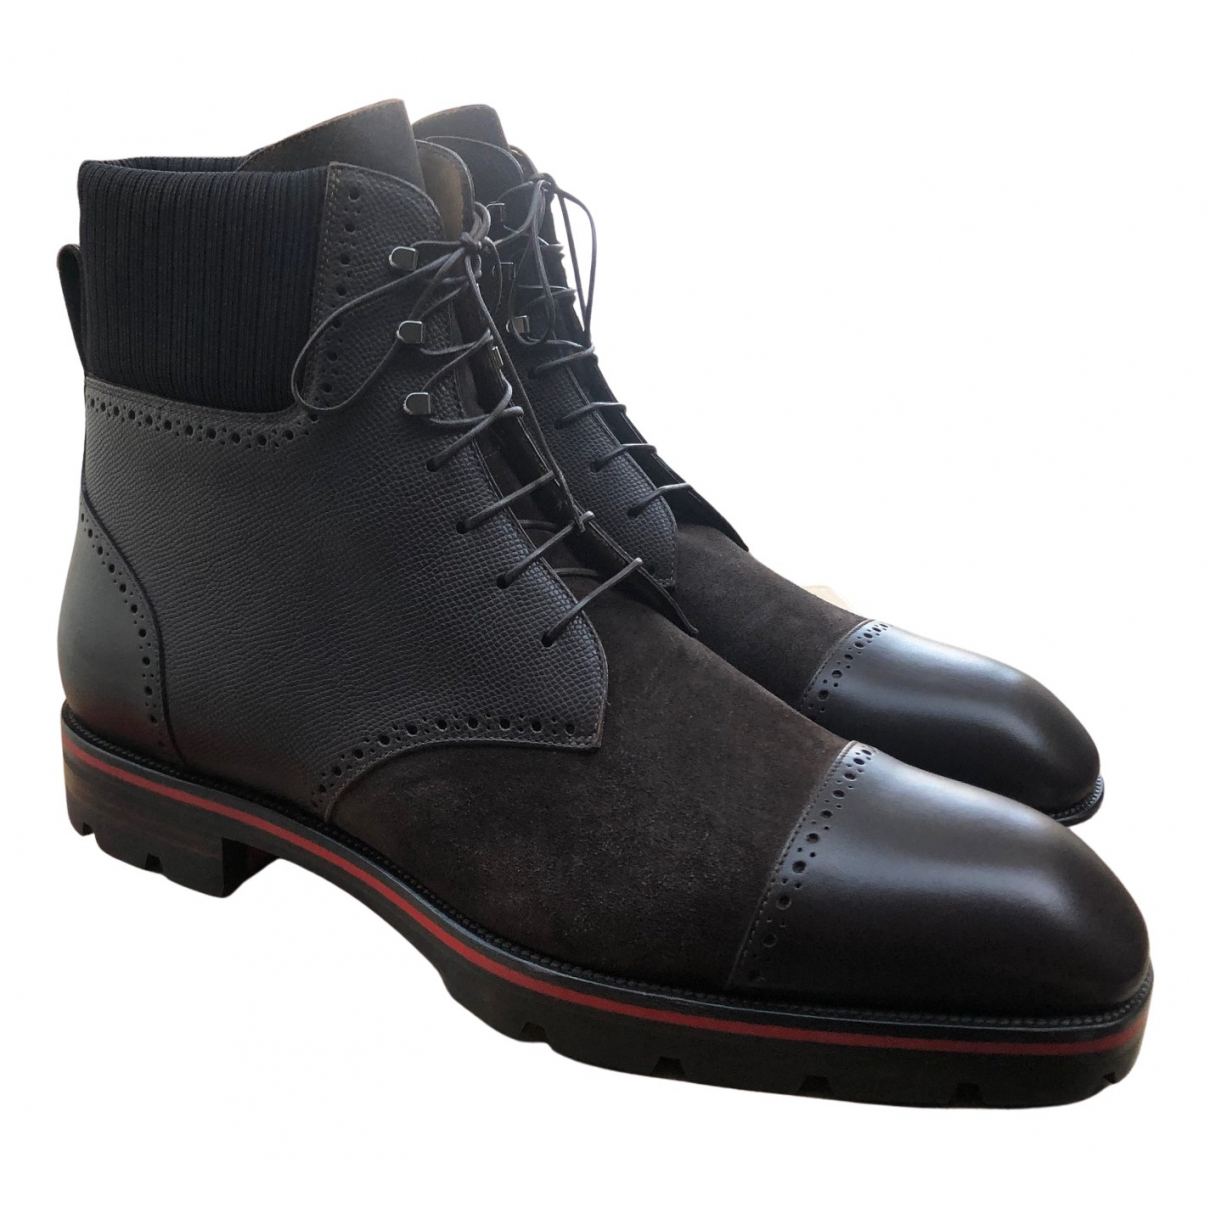 Christian Louboutin N Brown Leather Boots for Men 40 EU